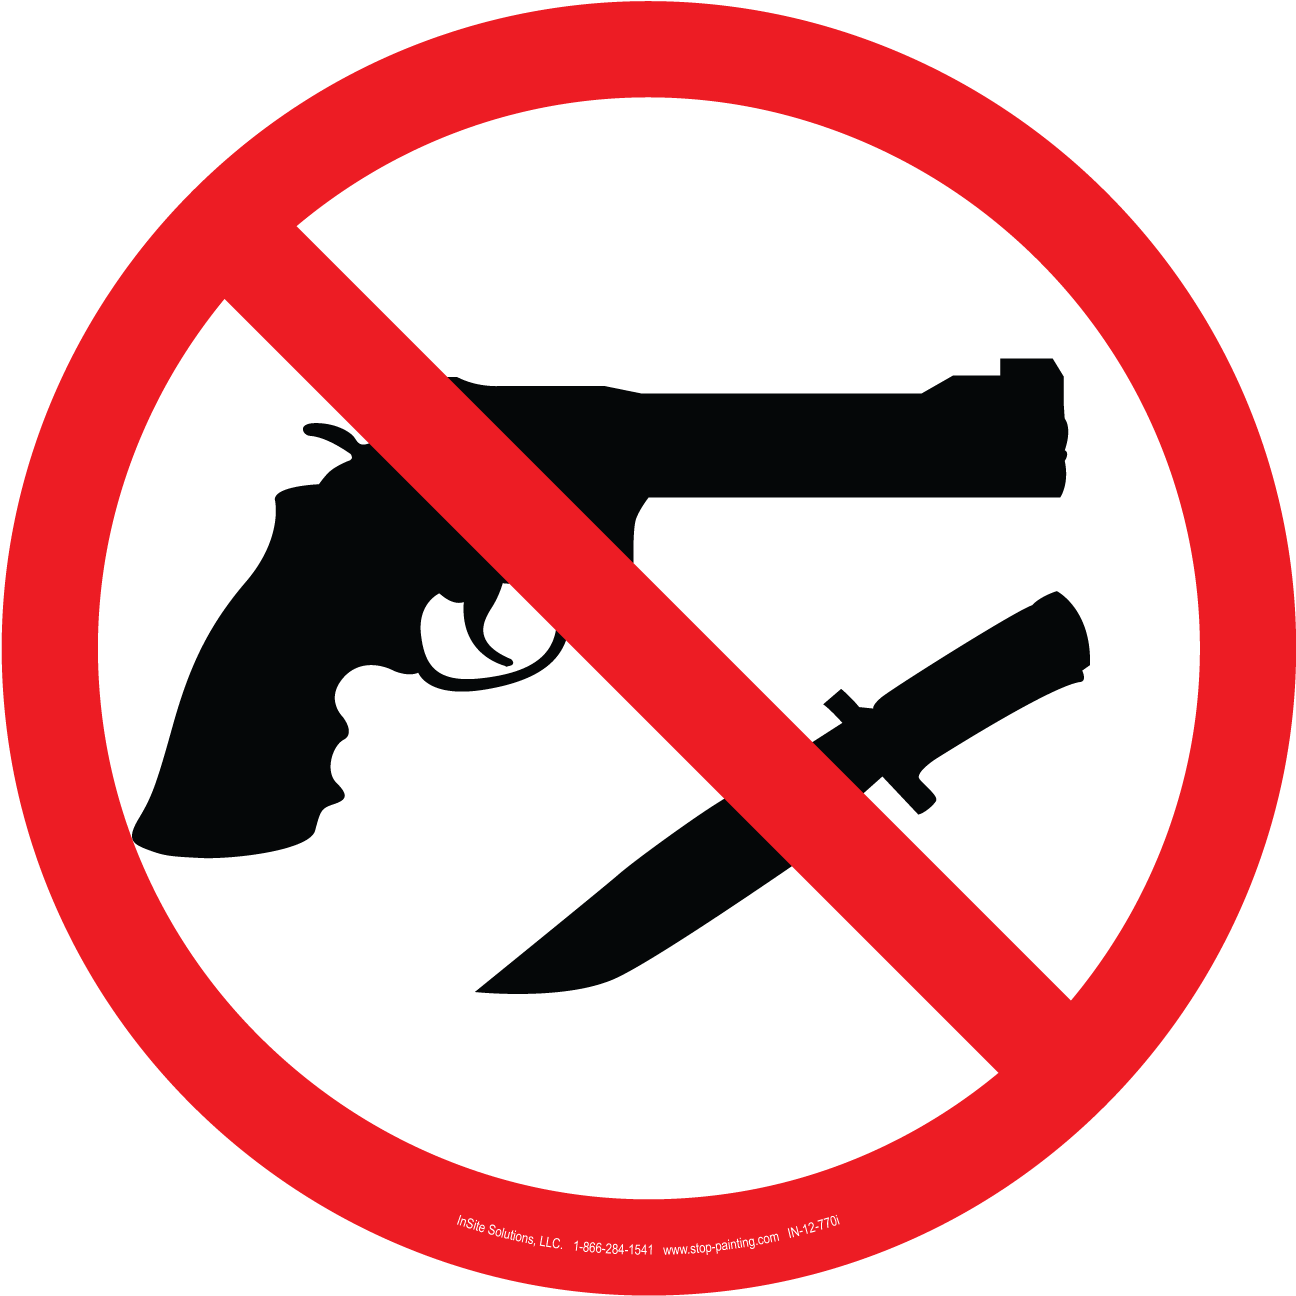 Weapons Not Allowed Floor Sign 18-Weapons Not Allowed Floor Sign 18-18